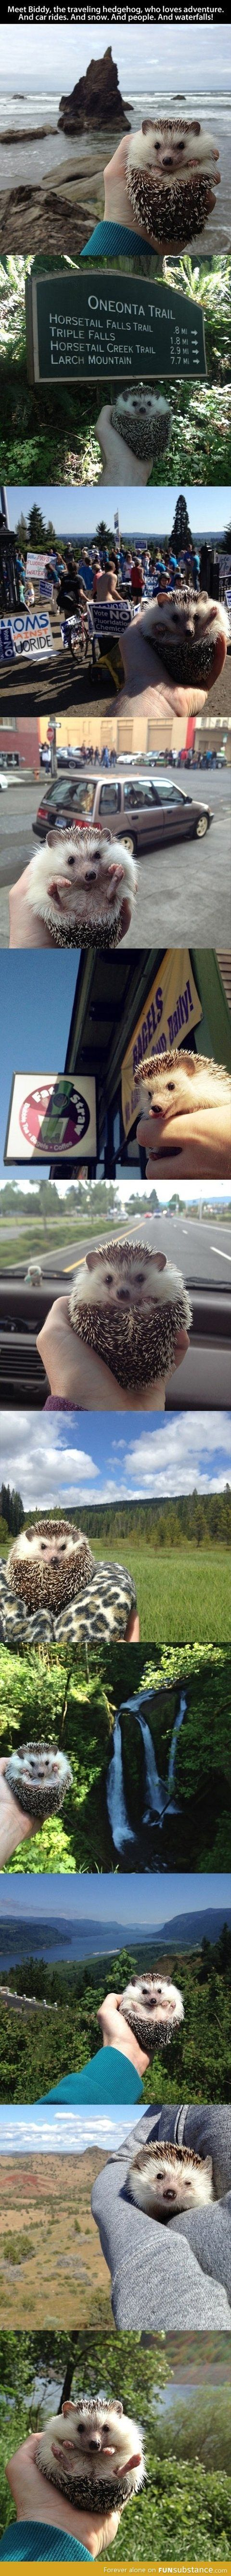 Adventurous hedgehog